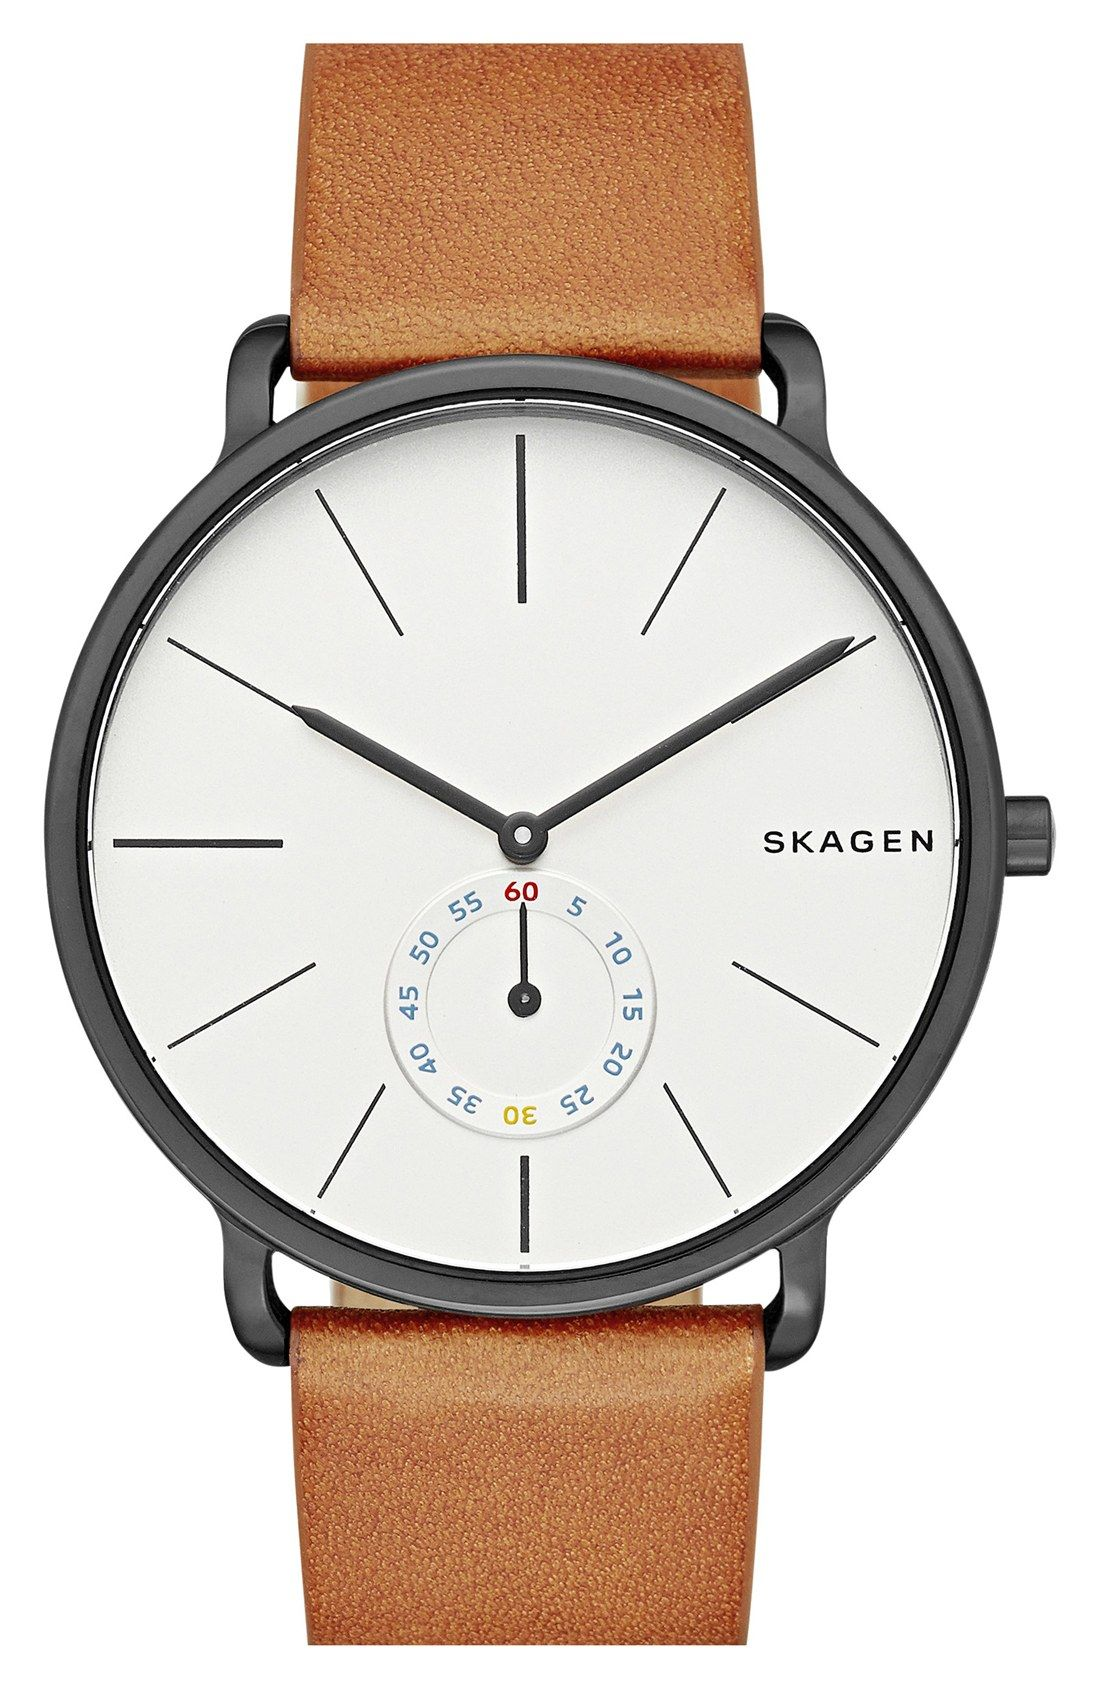 Hagen leather strap watch 40mm skagen leather strap watch and leather for Leather strap watches